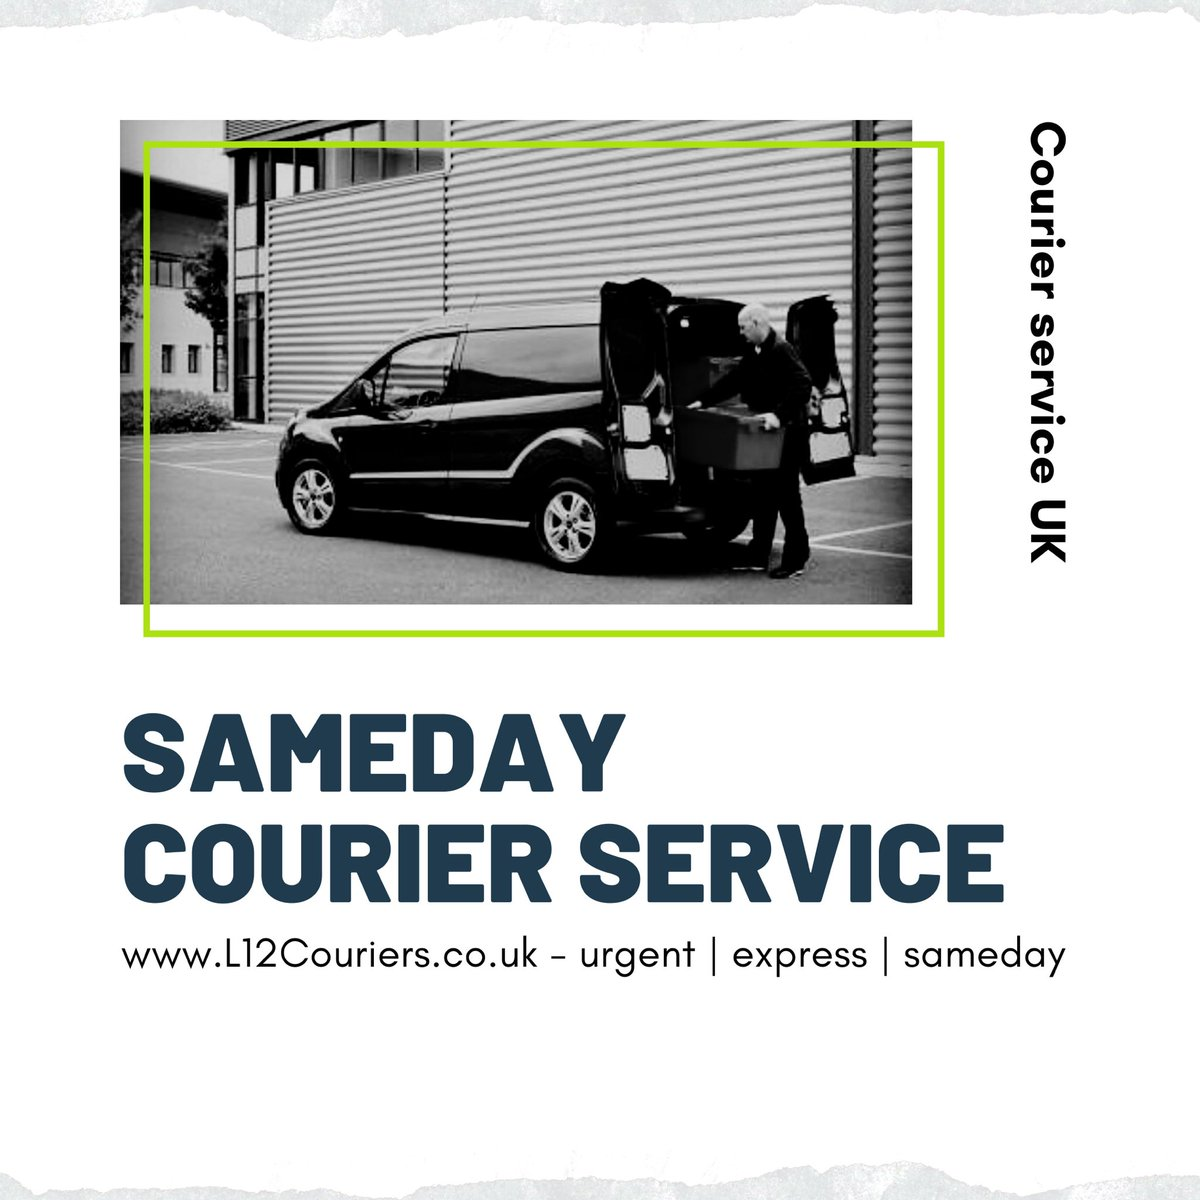 If you're goods need to go out to your customer before the weekend, give us a call and we'll send a van straight over and deliver direct. We'll provide the solution to any transport problems you may have. #urgent #express #sameday #courierspic.twitter.com/9czc7s9wi0